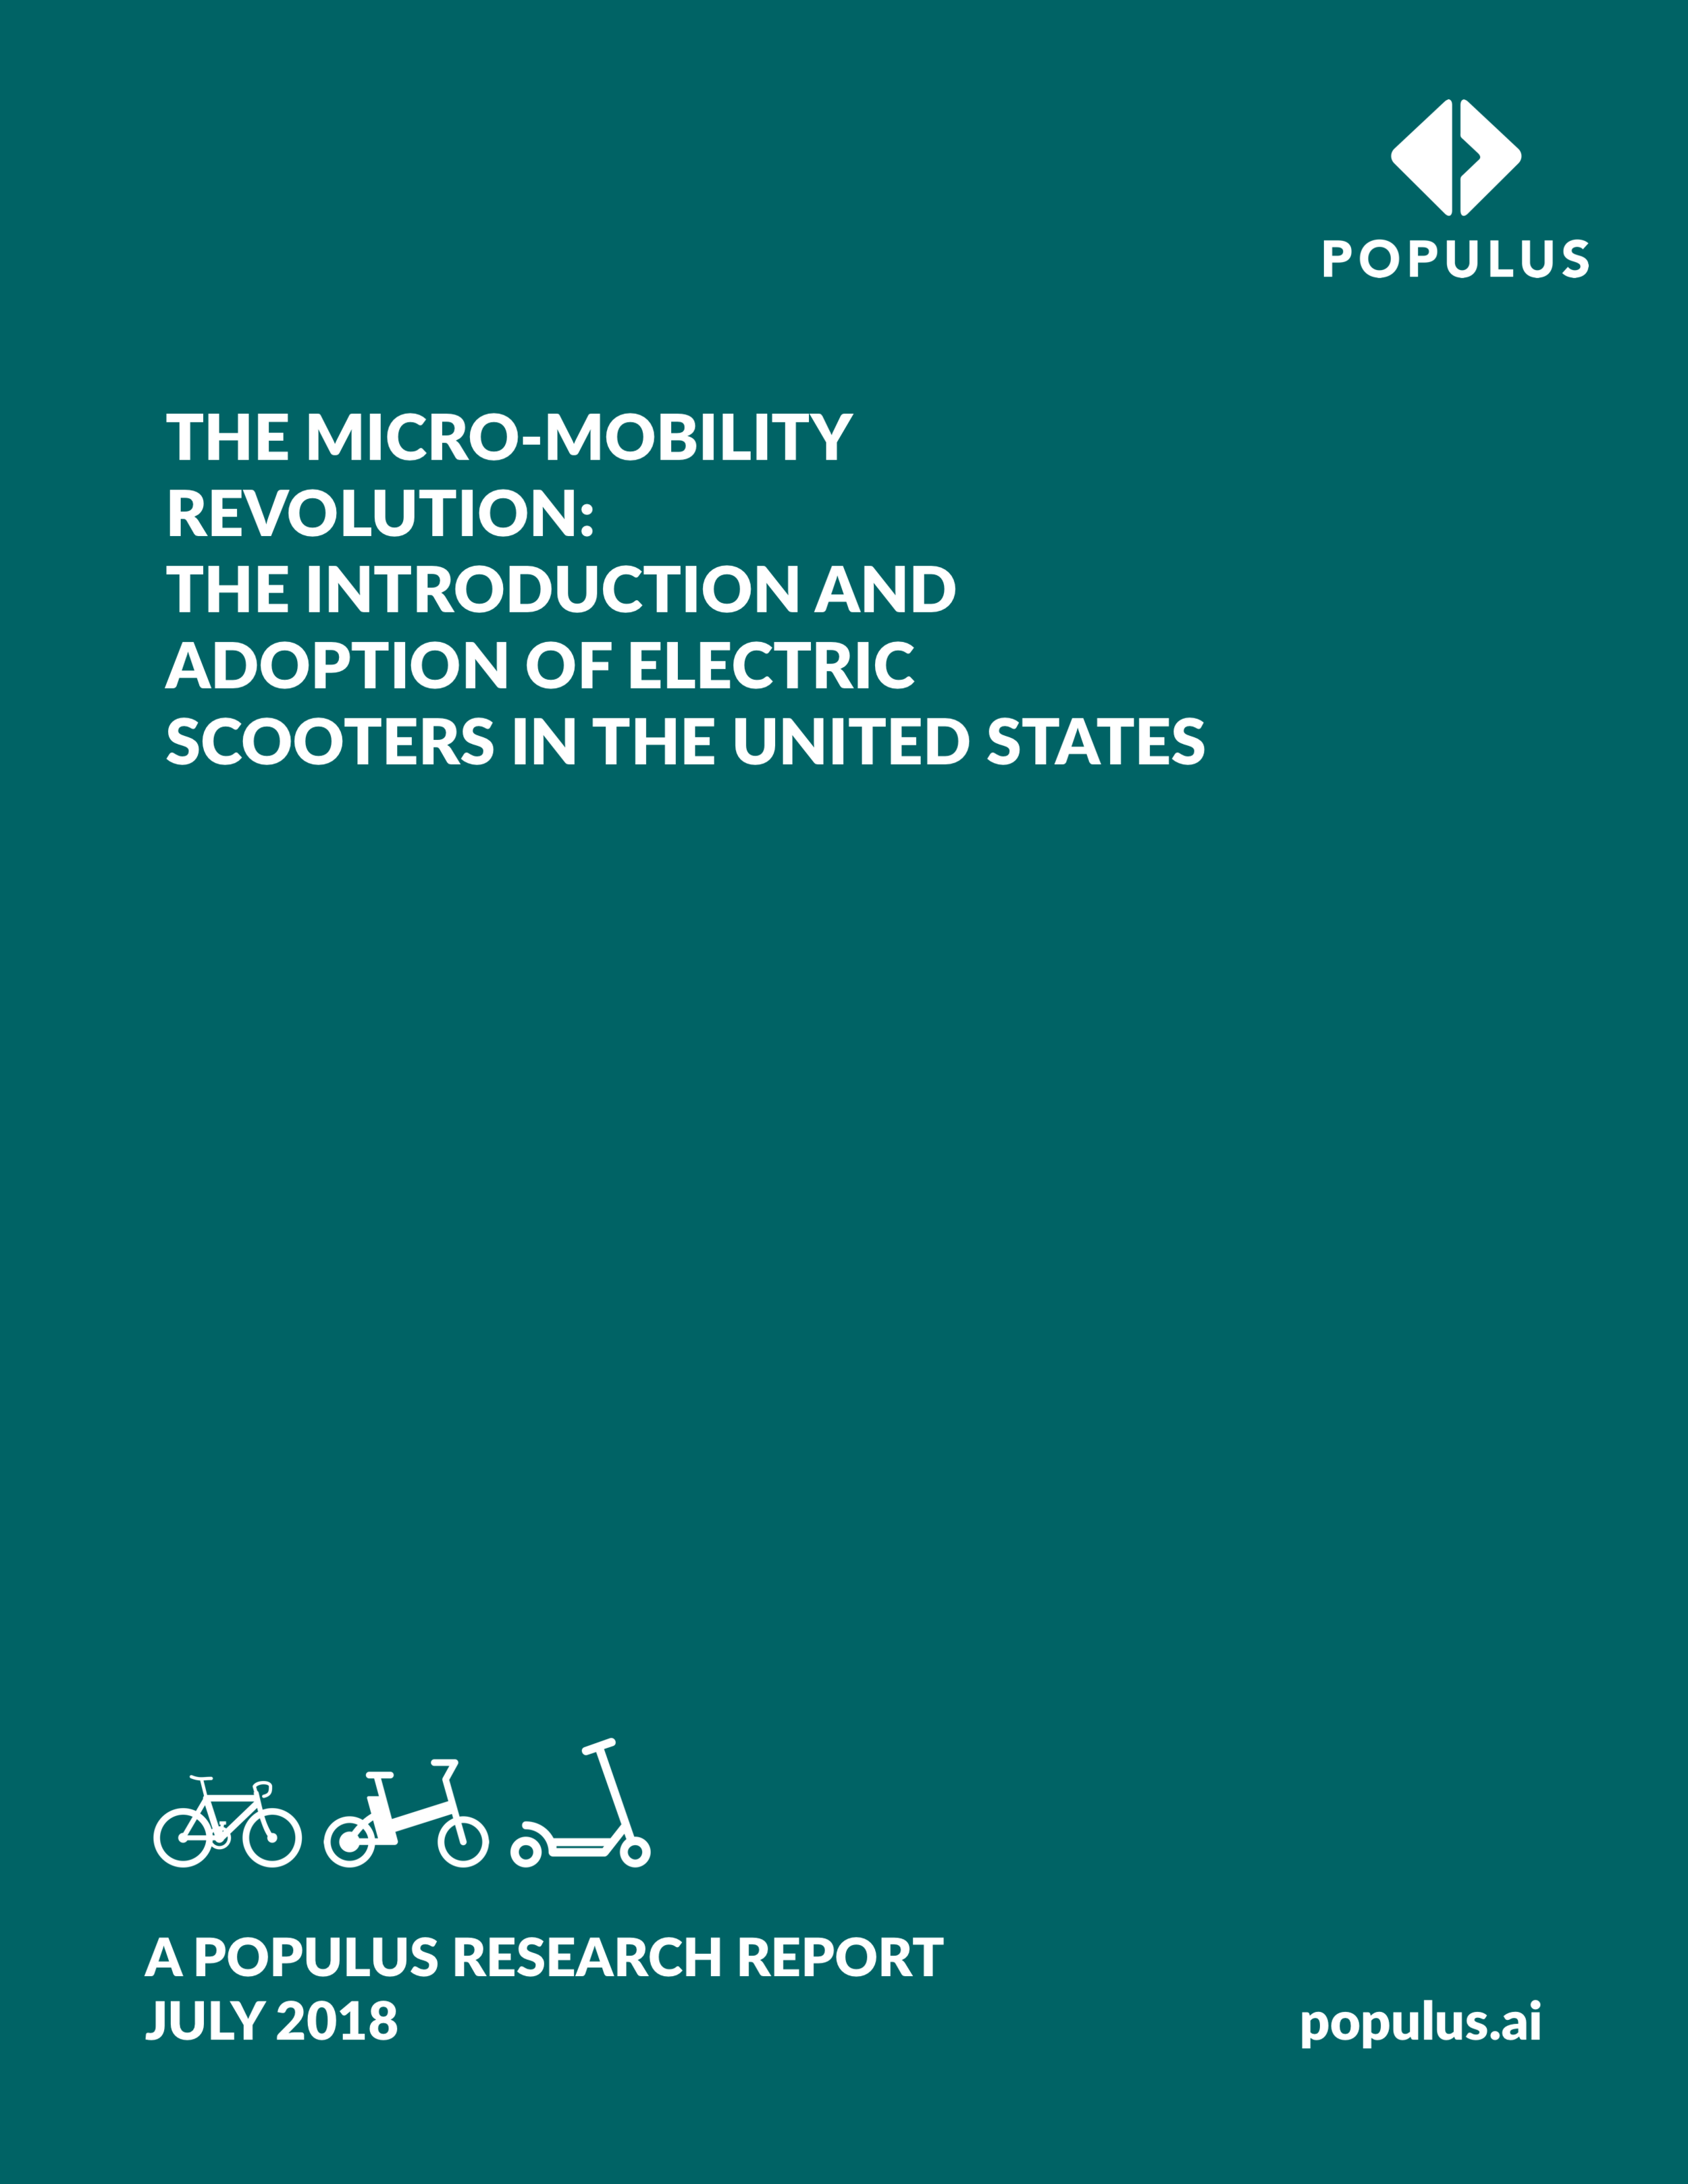 THE MICRO-MOBILITY REVOLUTION - The Populus 2018 study on micro-mobility presents new data and insights on the adoption, perceptions, and use of new services such as bikeshare, dockless bikeshare, and electric scooters based on primary data gathered through our platform May to July 2018. The study finds that a majority of people in U.S. cities have a strong positive view of these services, and a somewhat large portion of people have used them, despite their recent introduction to the mobility ecosystem.